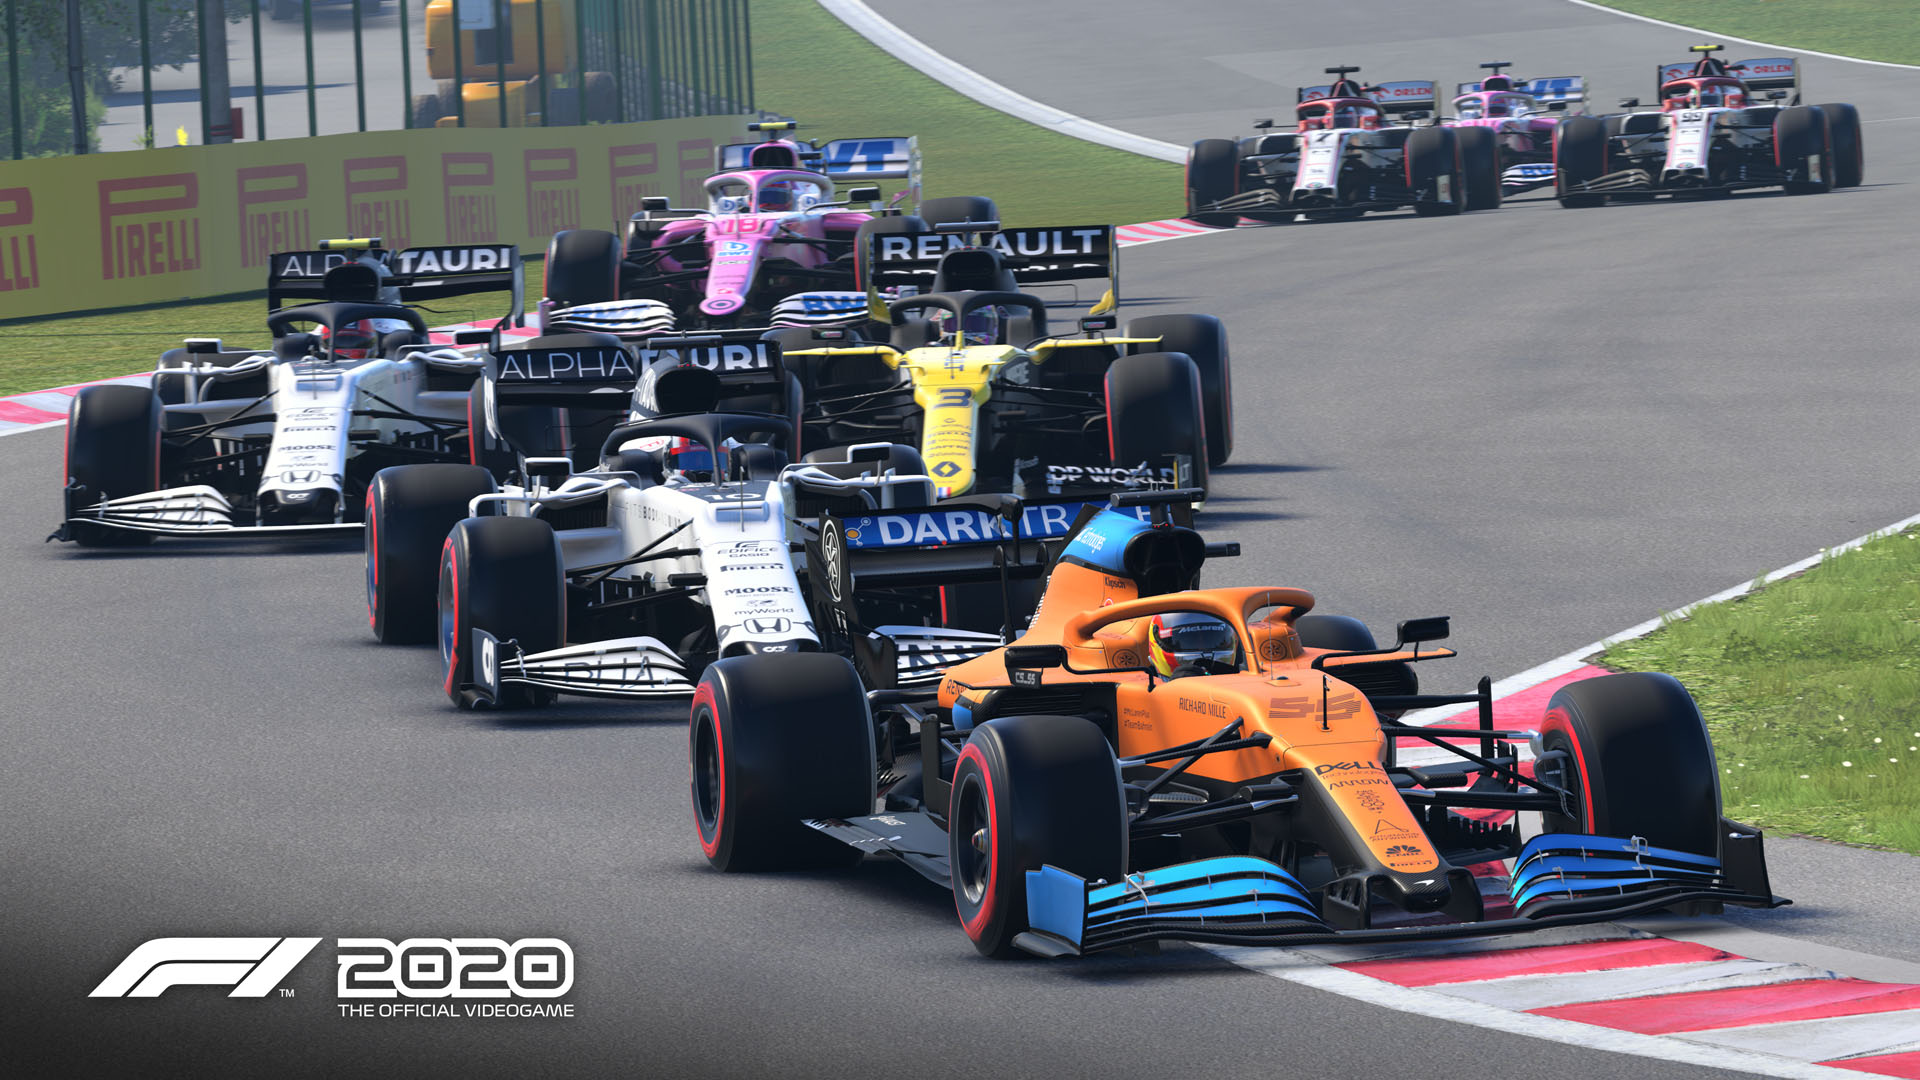 F1 2020 Review Thexboxhub